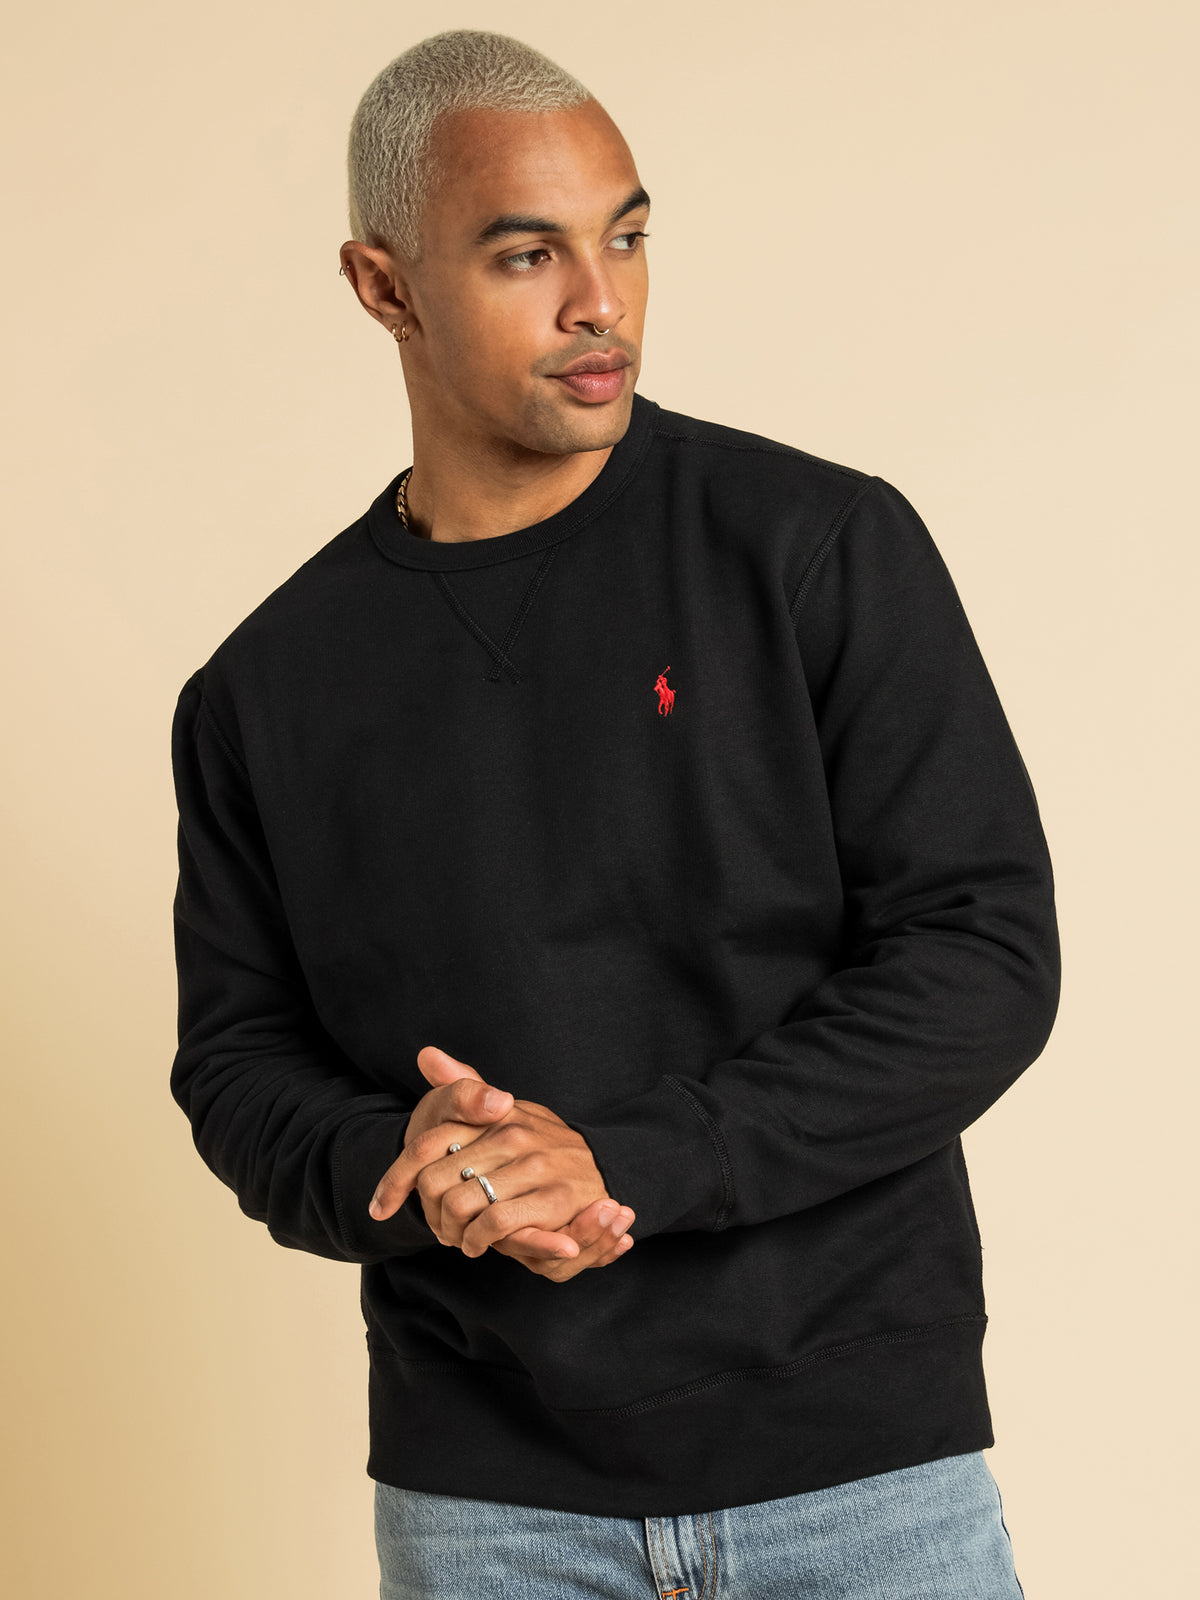 Long Sleeve Sweatshirt in Black